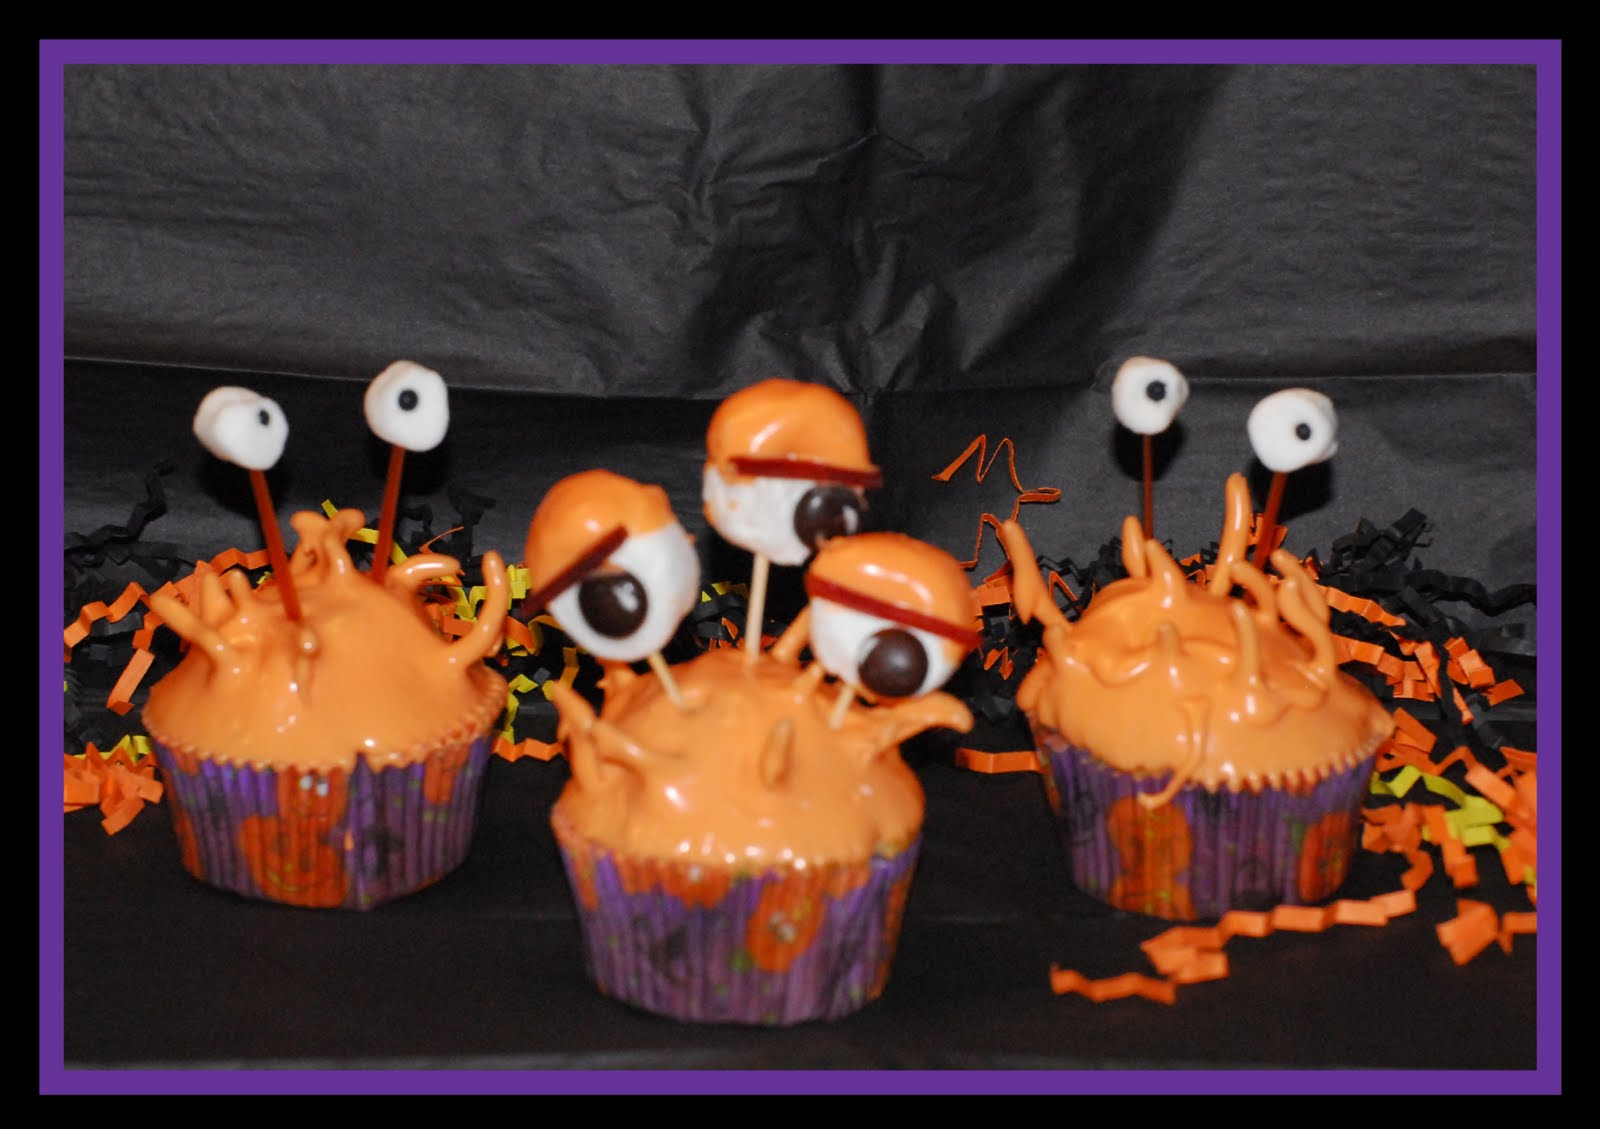 ... cupcakes to learn how to make these creepy cupcakes watch these you